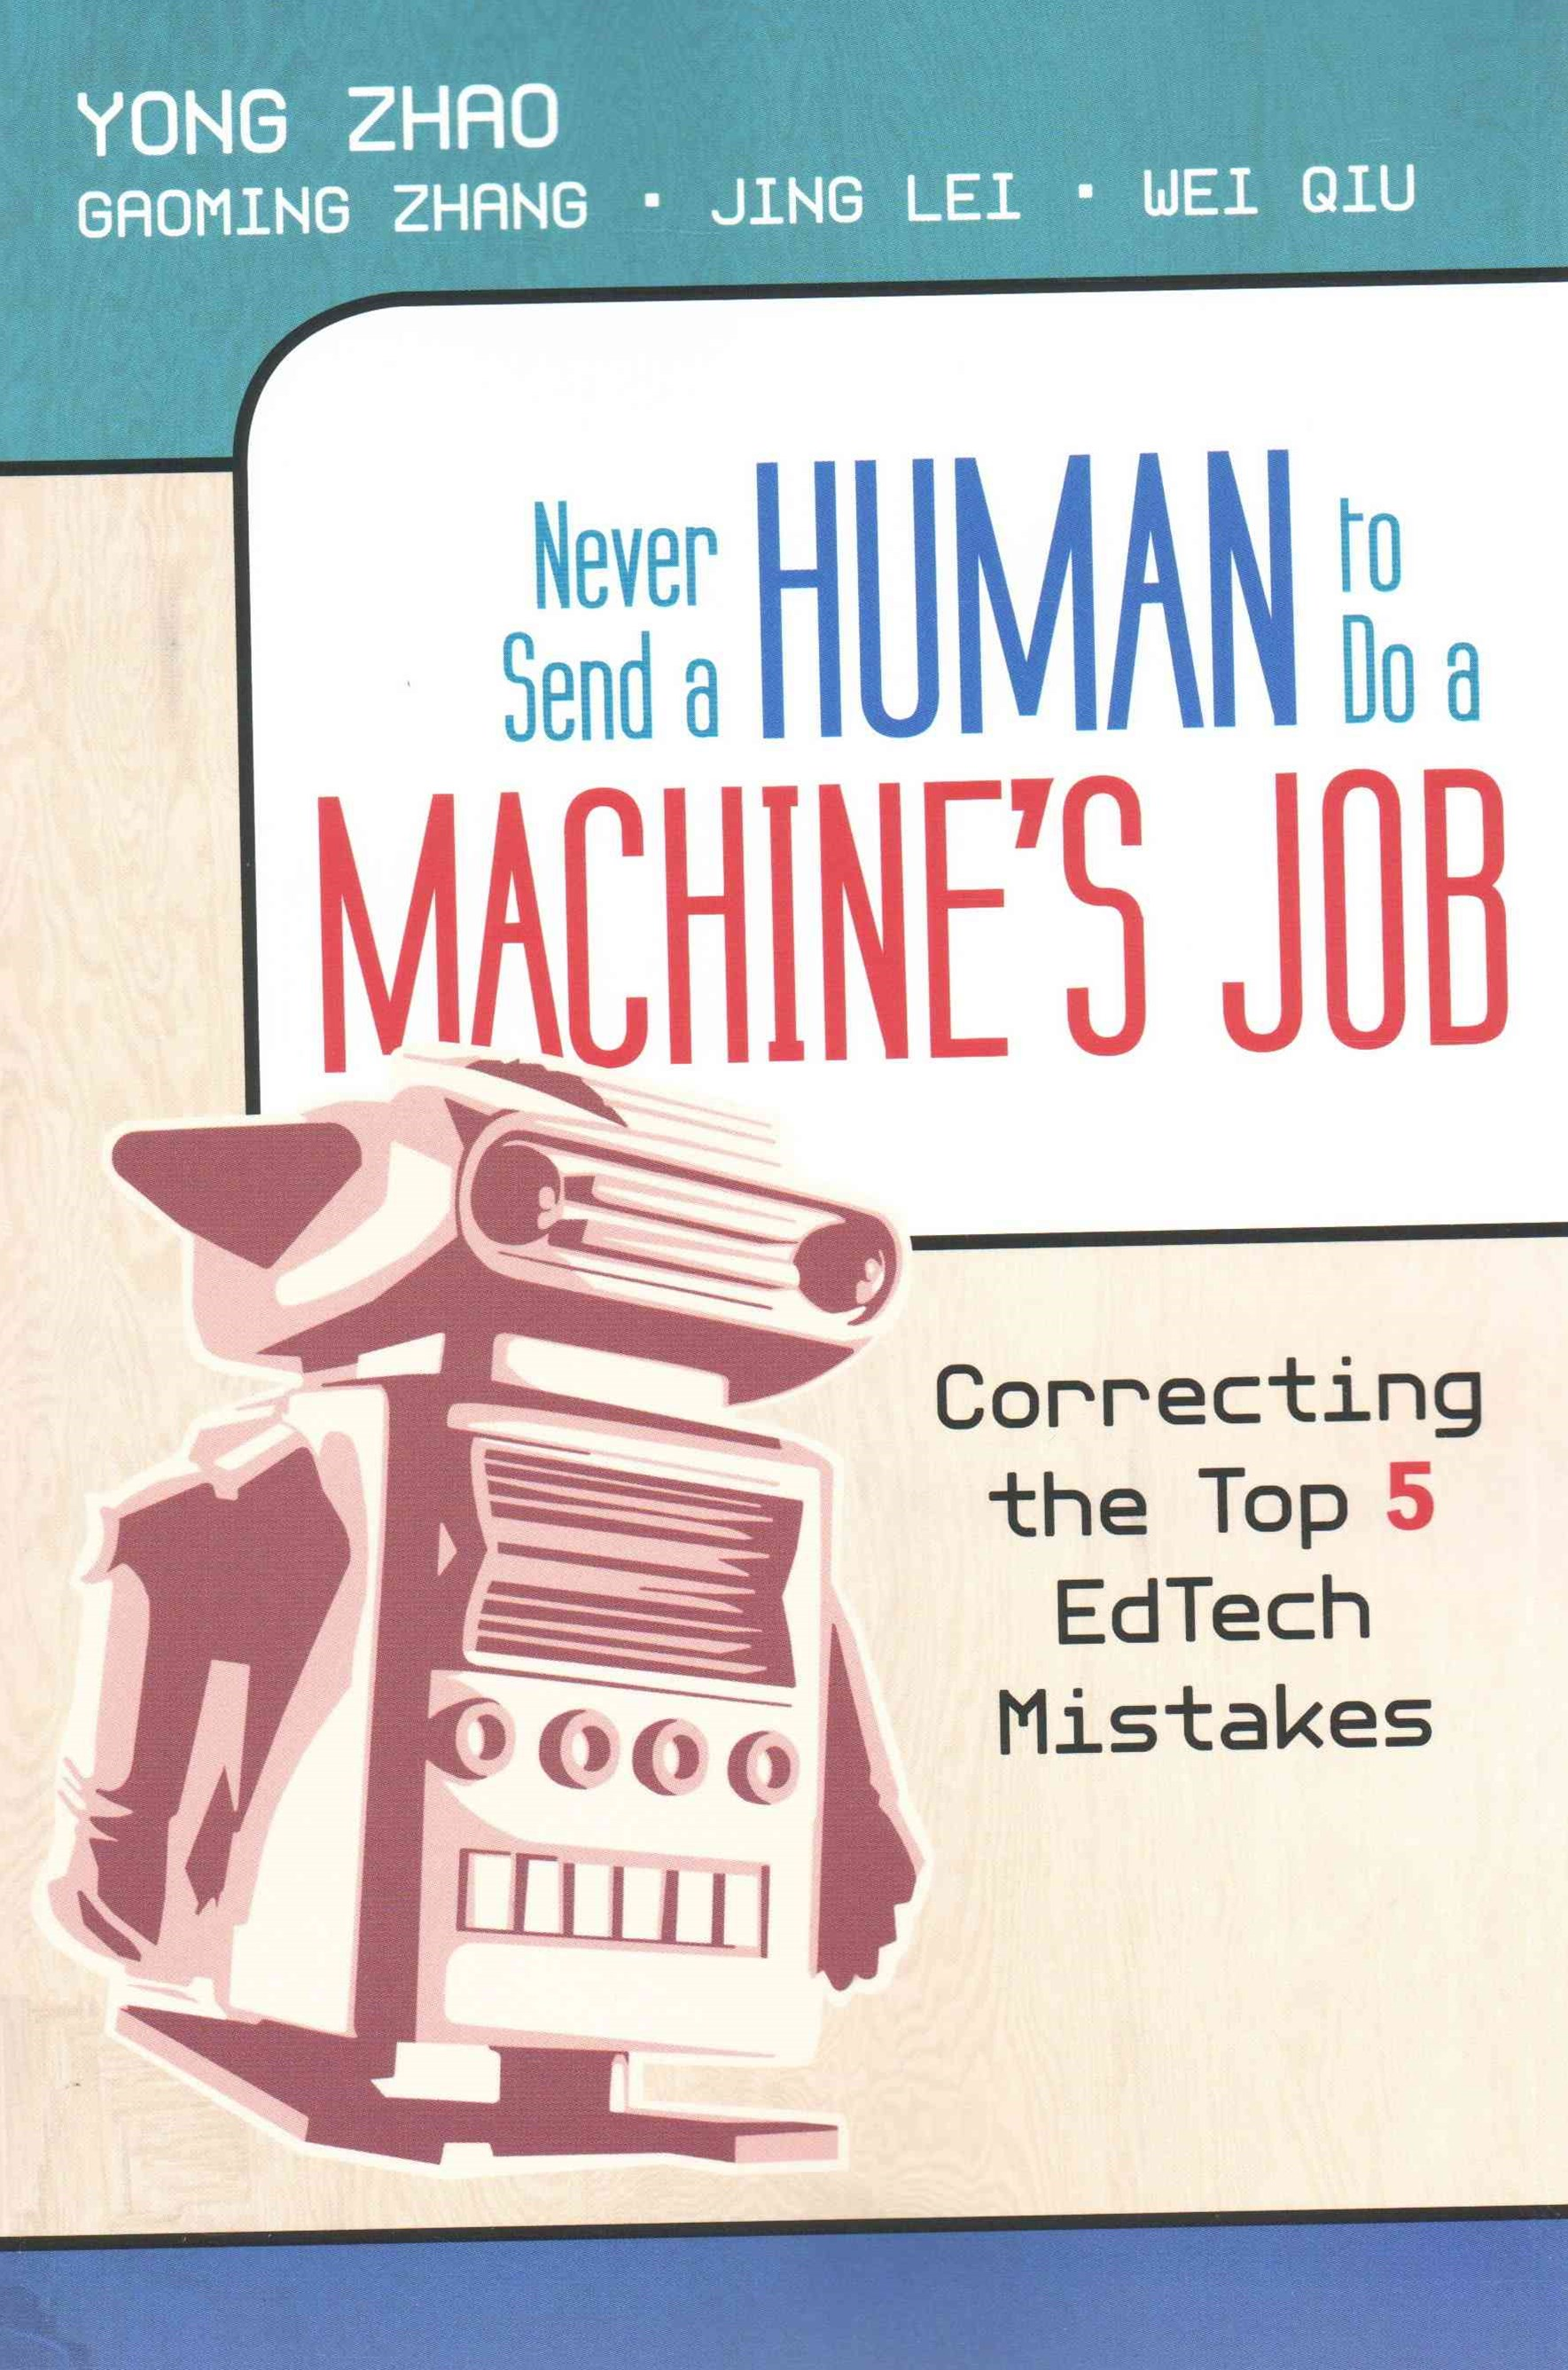 Never Send a Human to Do a Machine's Job